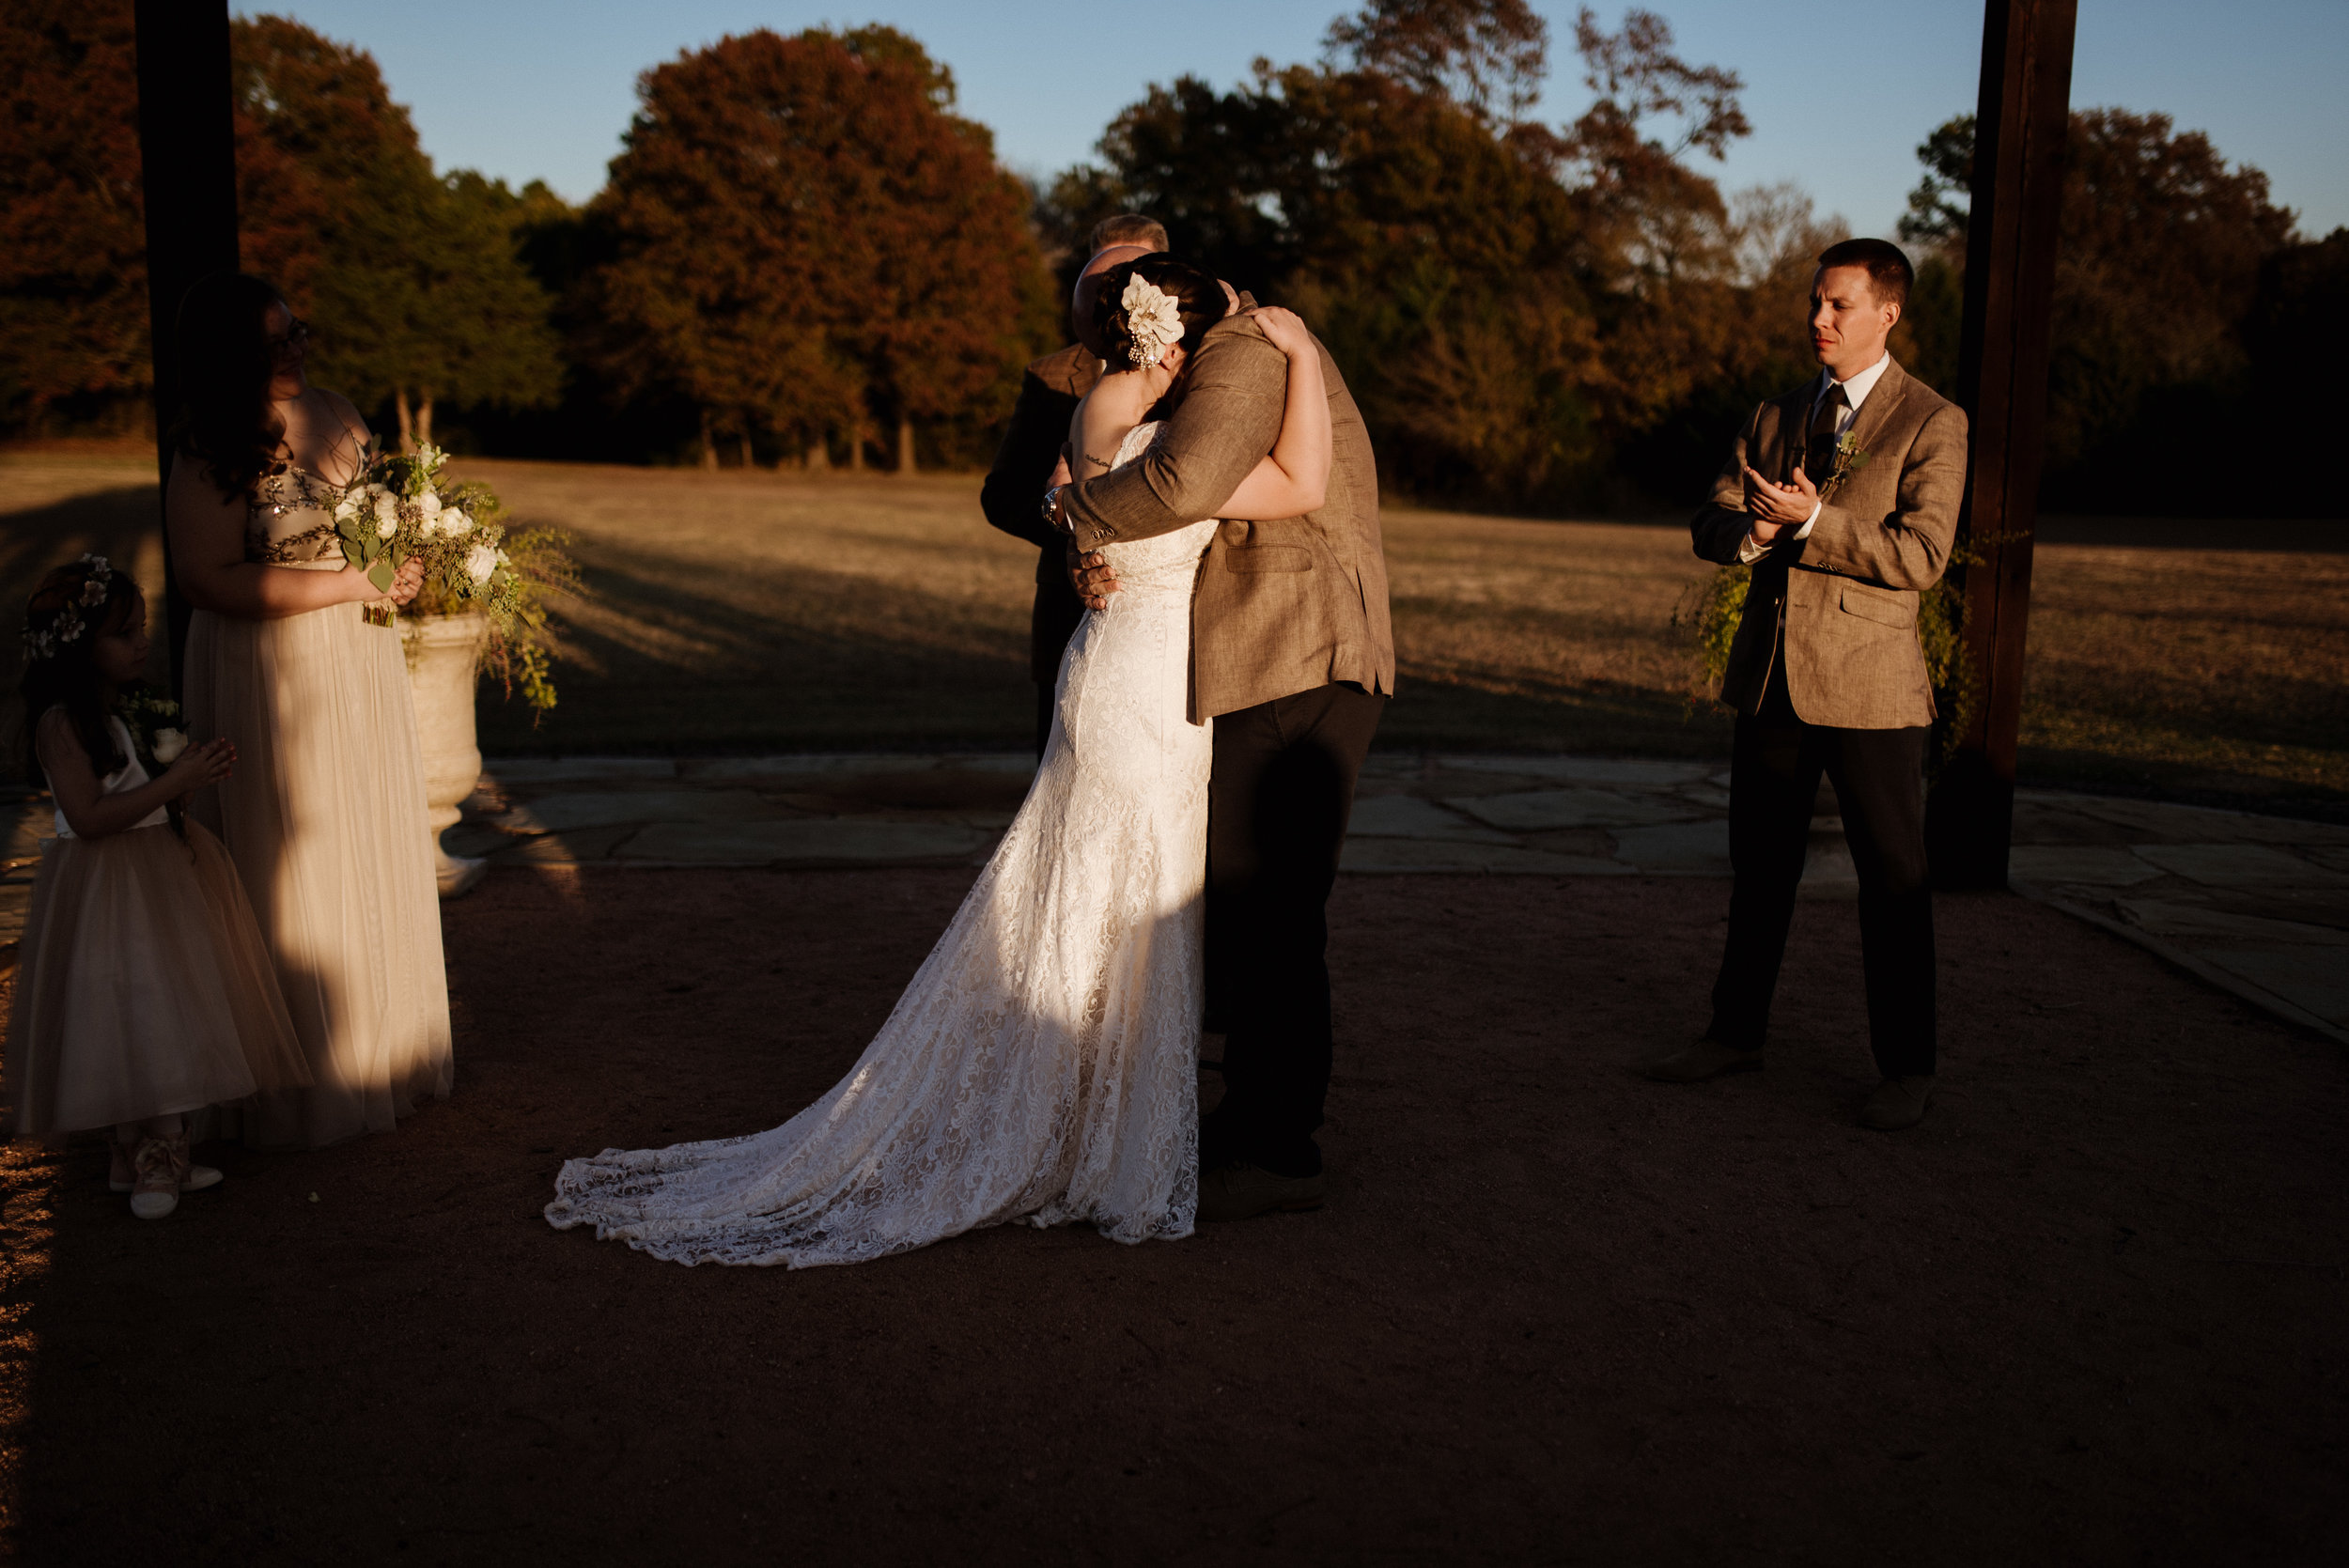 Upshaw Wedding-460.jpg